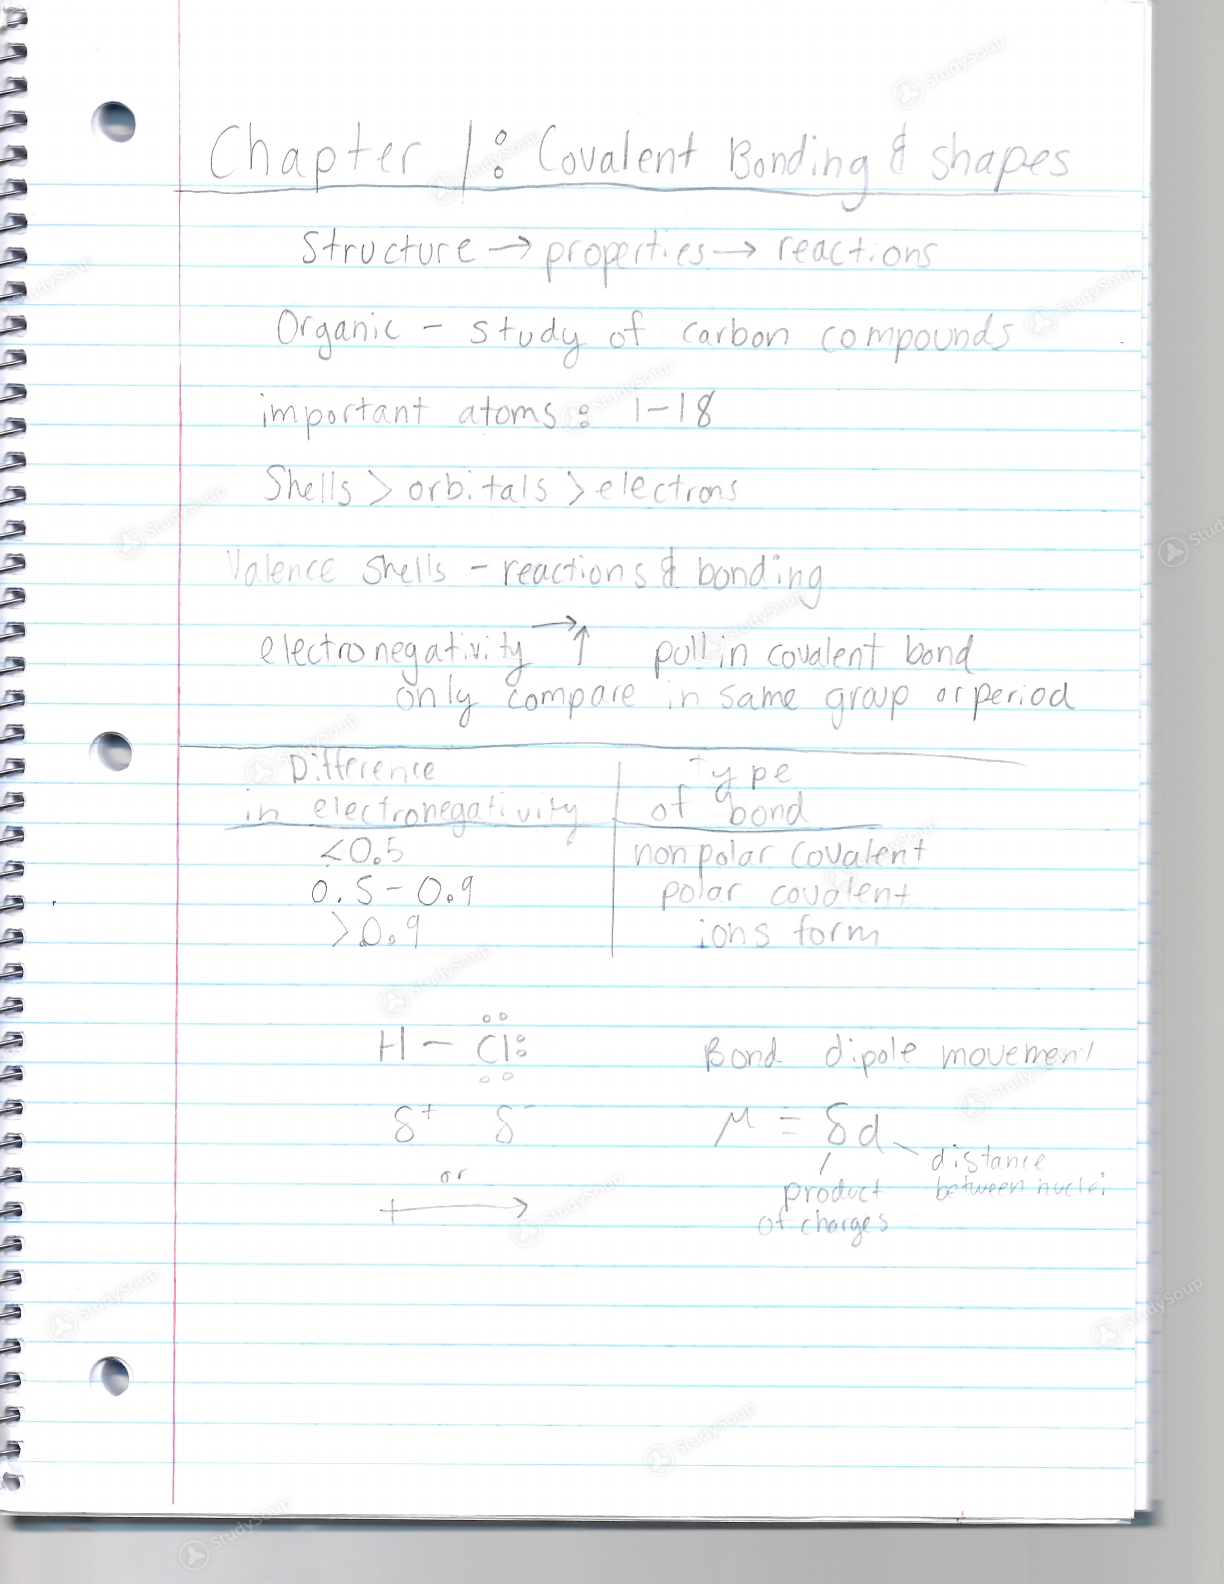 UCLA - Chemistry and Biochemistry 30 - Class Notes - Week 1